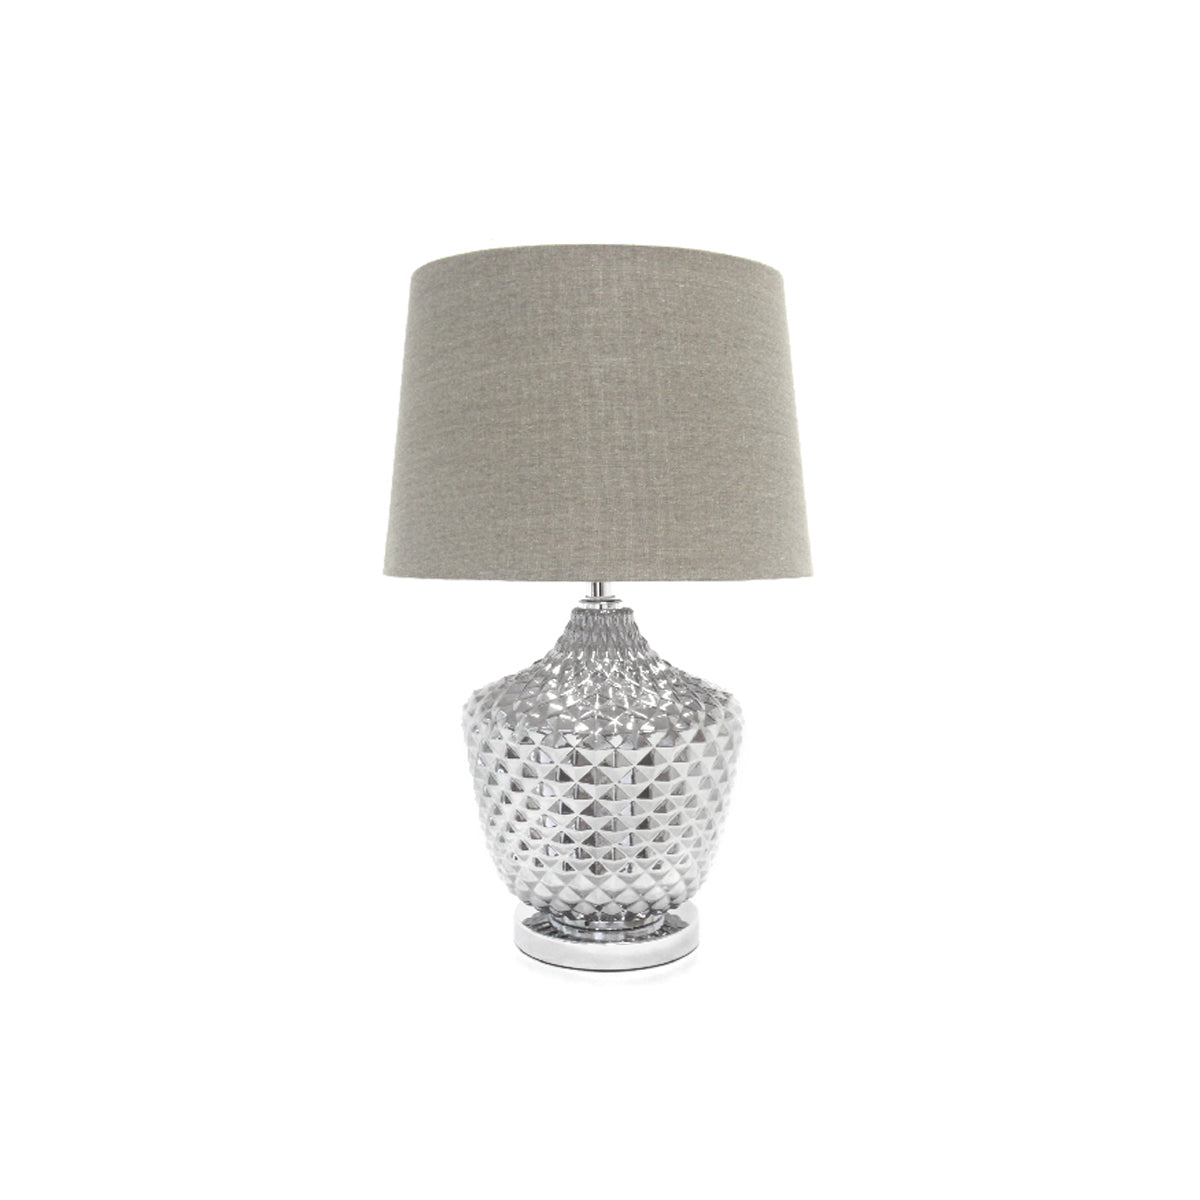 Serenity Star Table Lamp